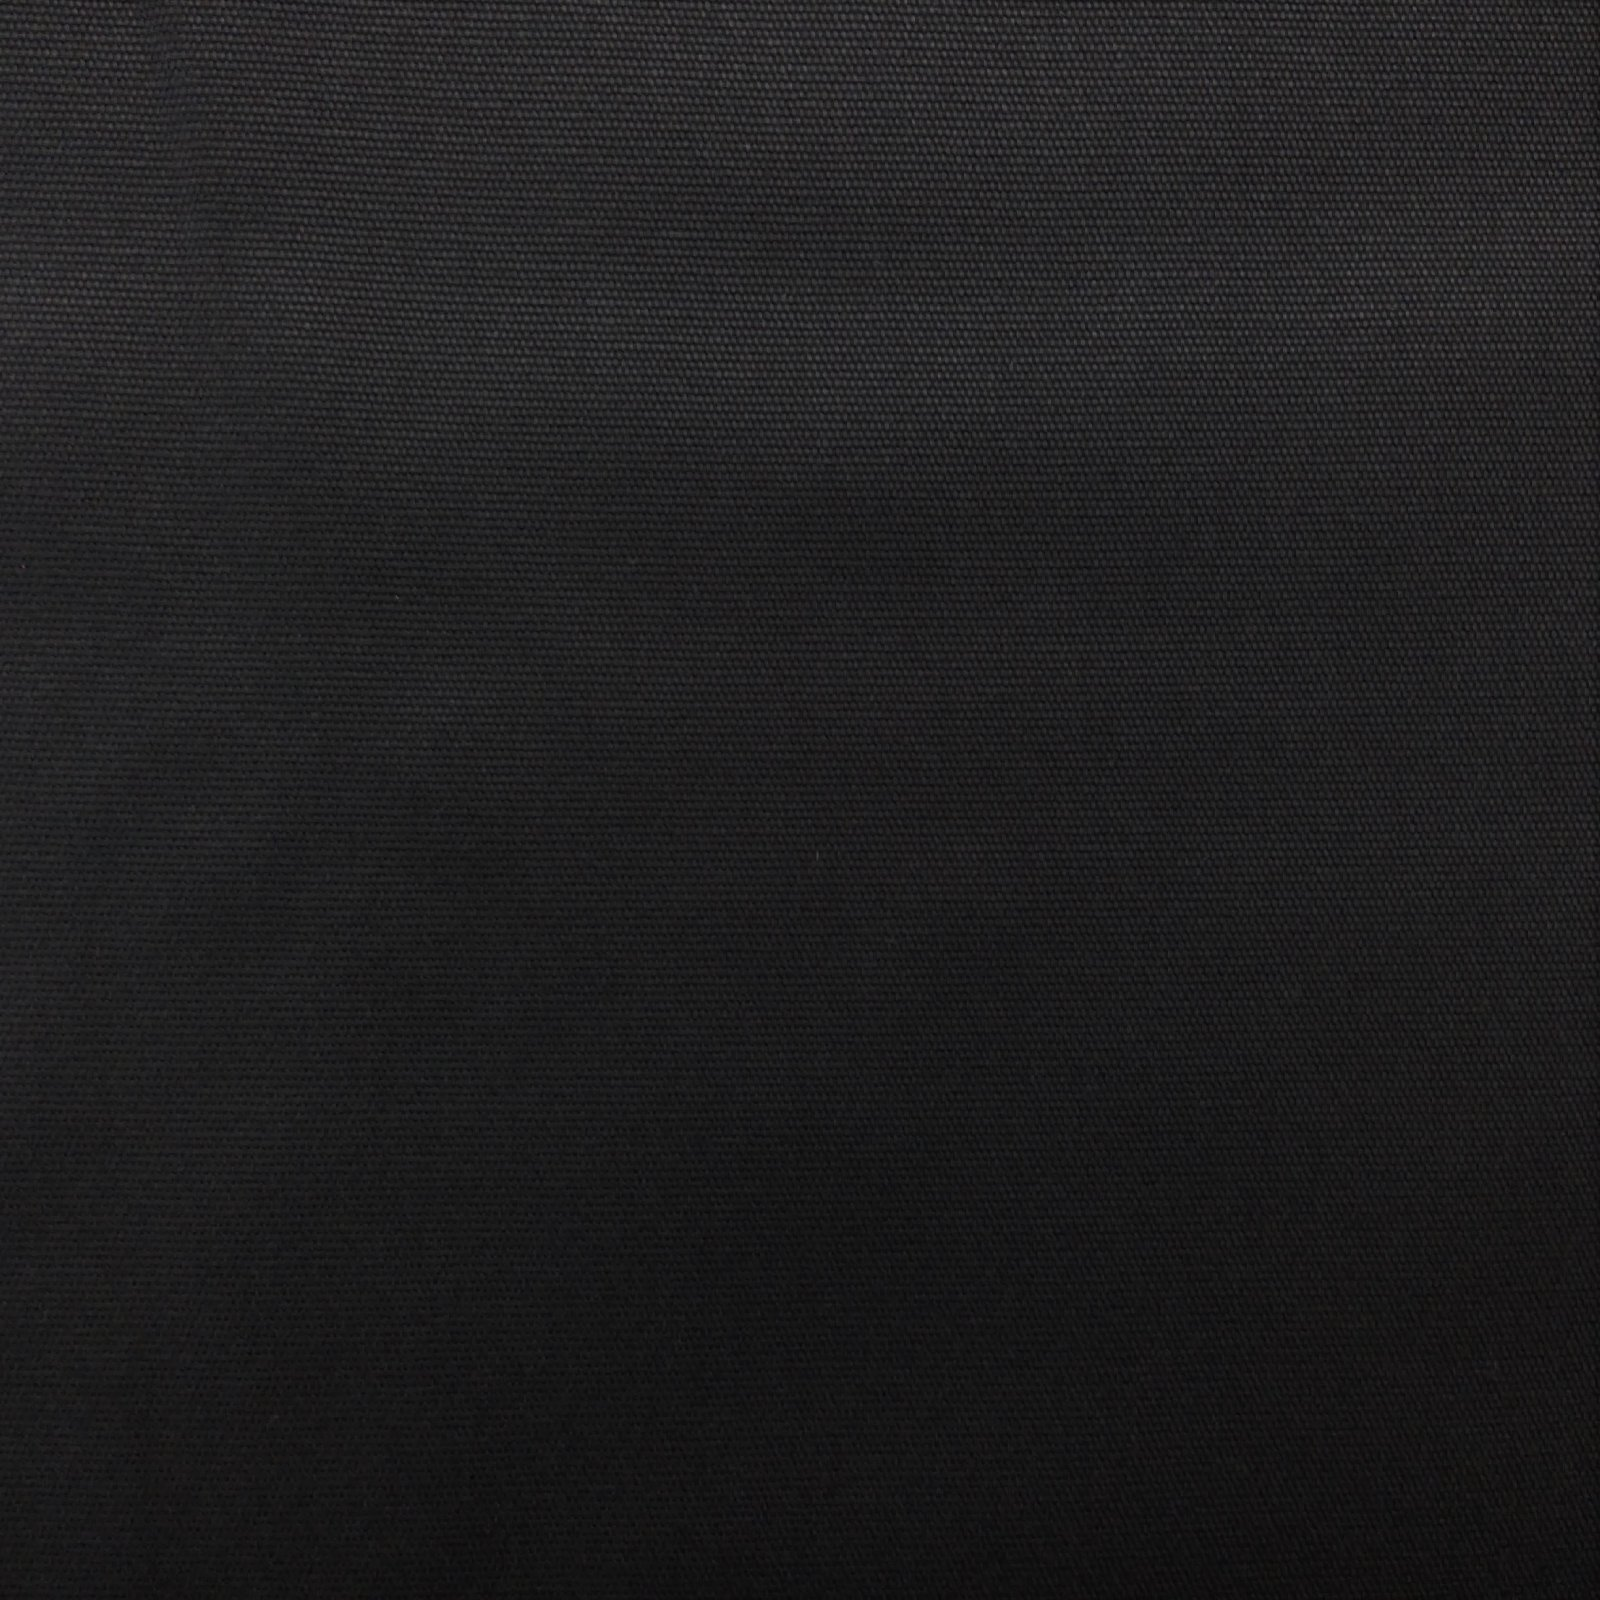 Canvas Solid 100% Cotton Black